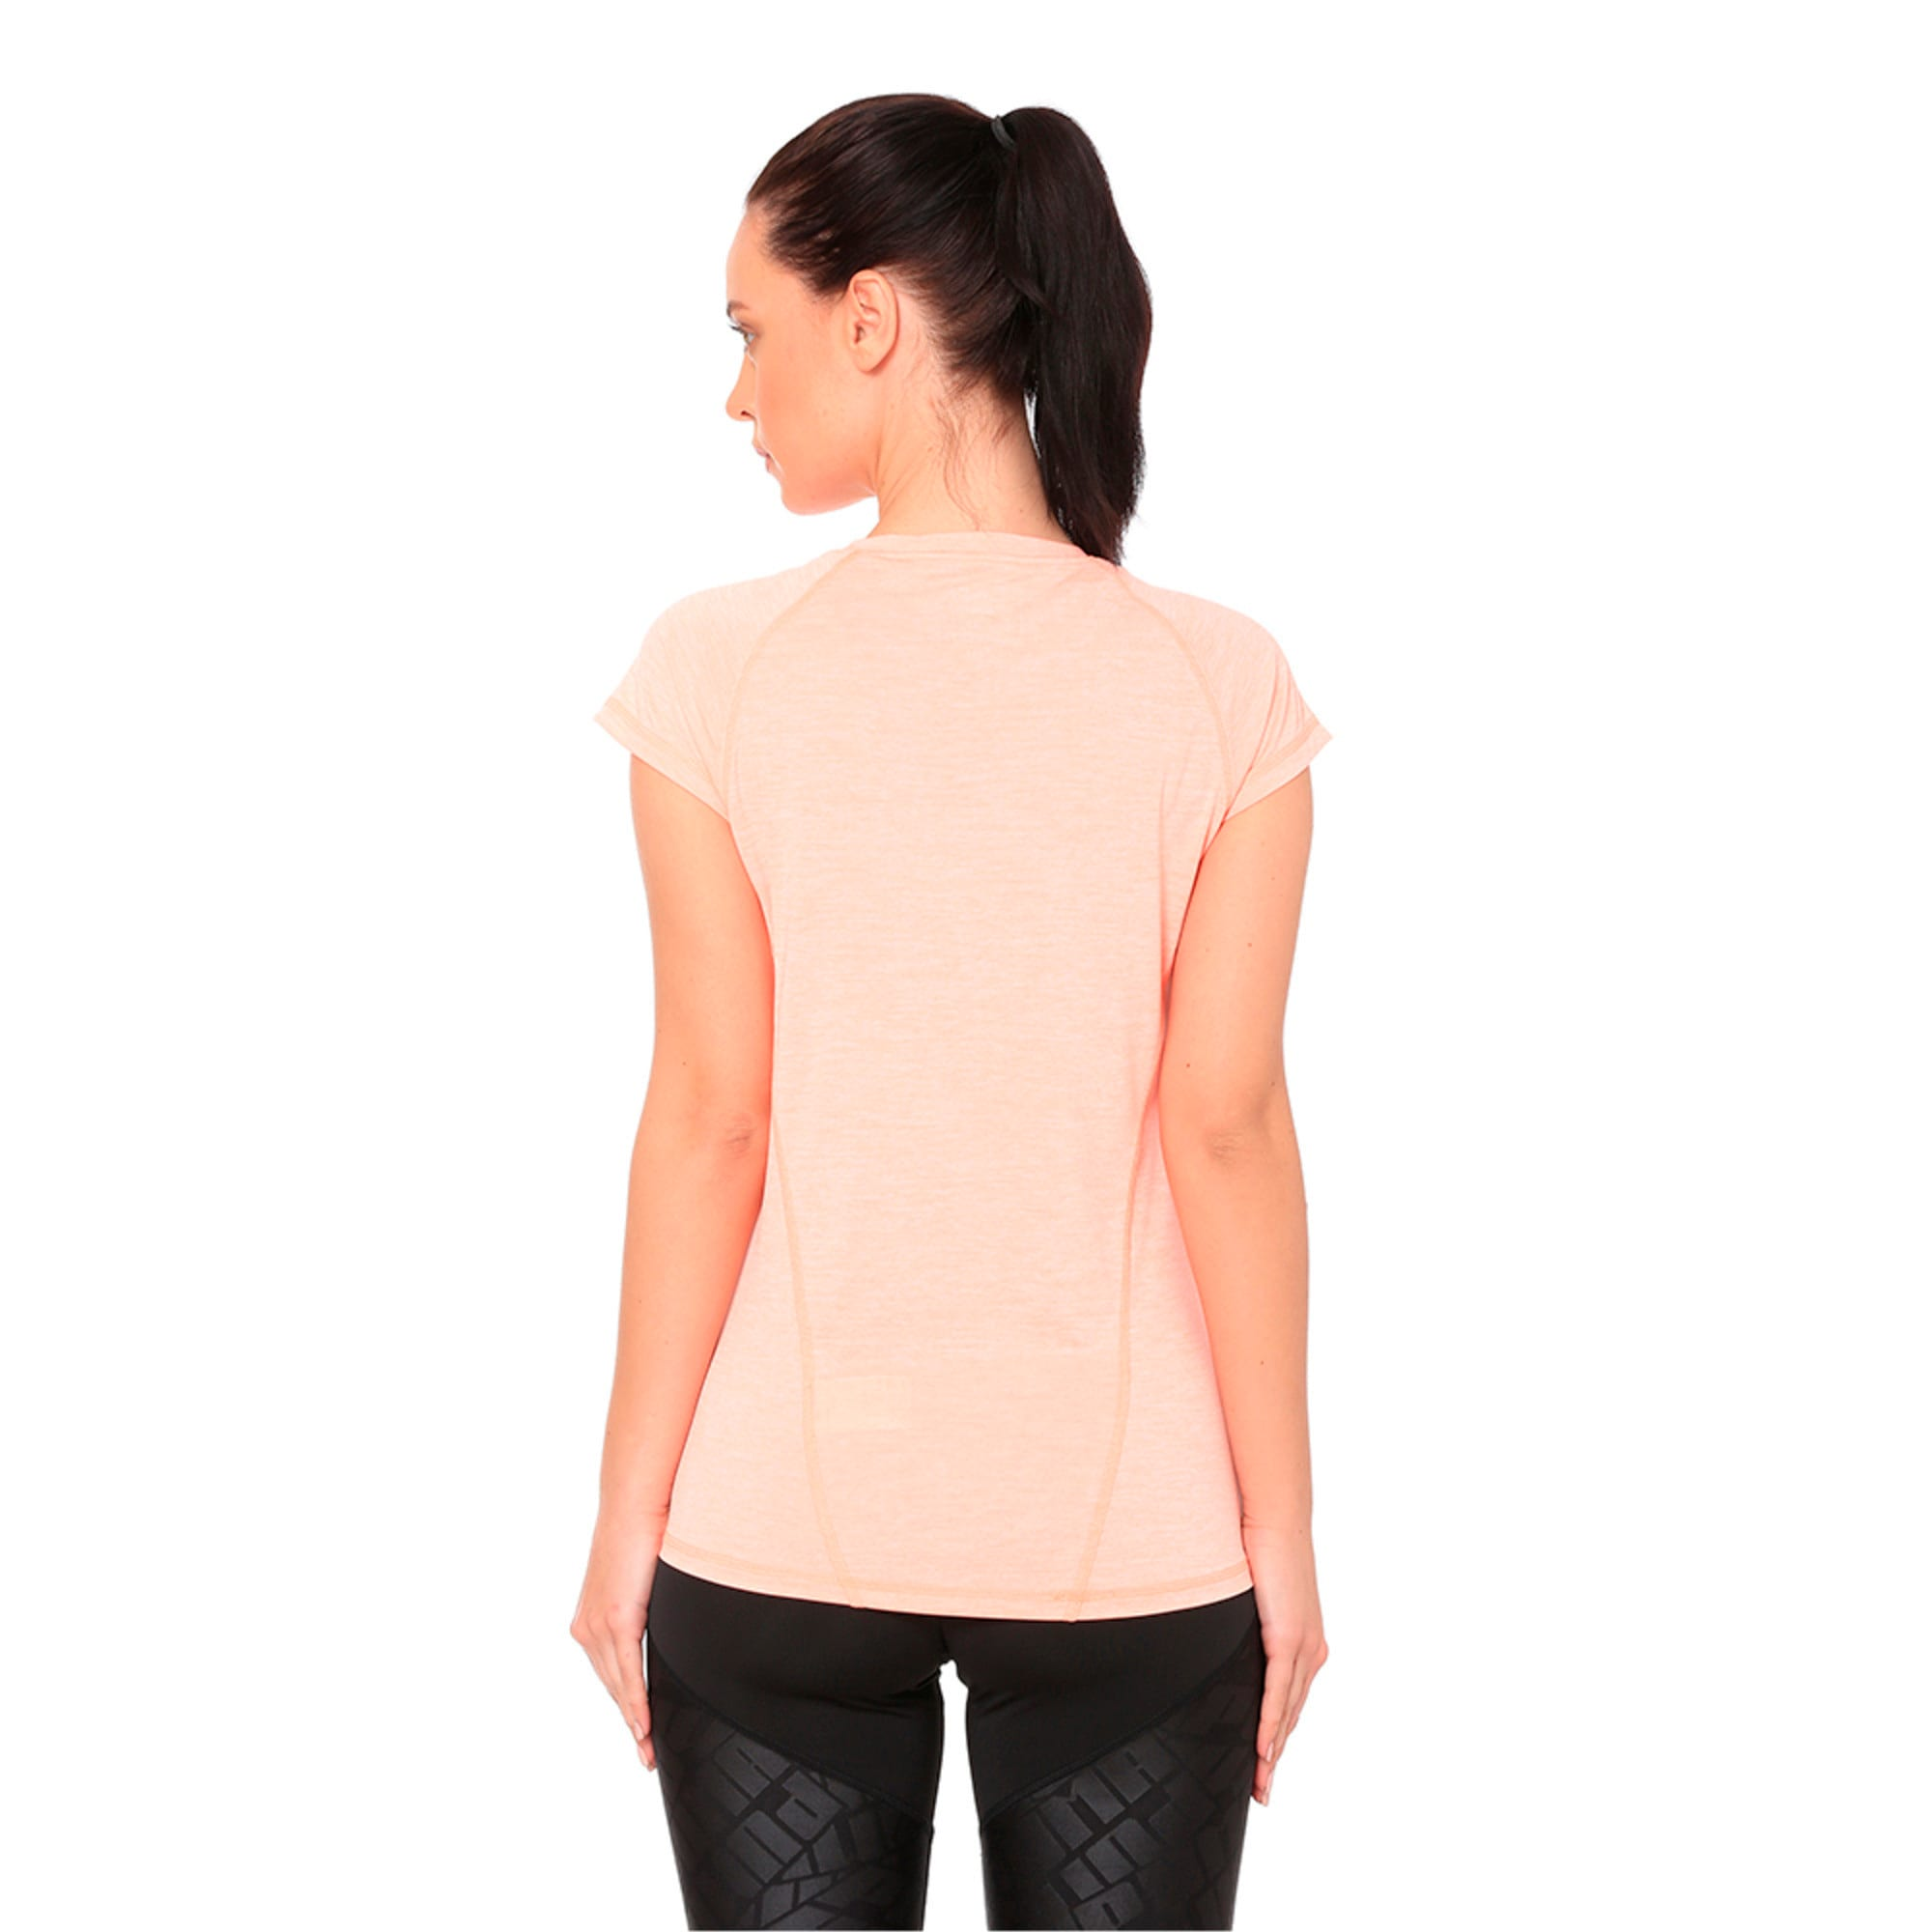 Thumbnail 5 of DeLite Tee, Bright Peach Heather, medium-IND